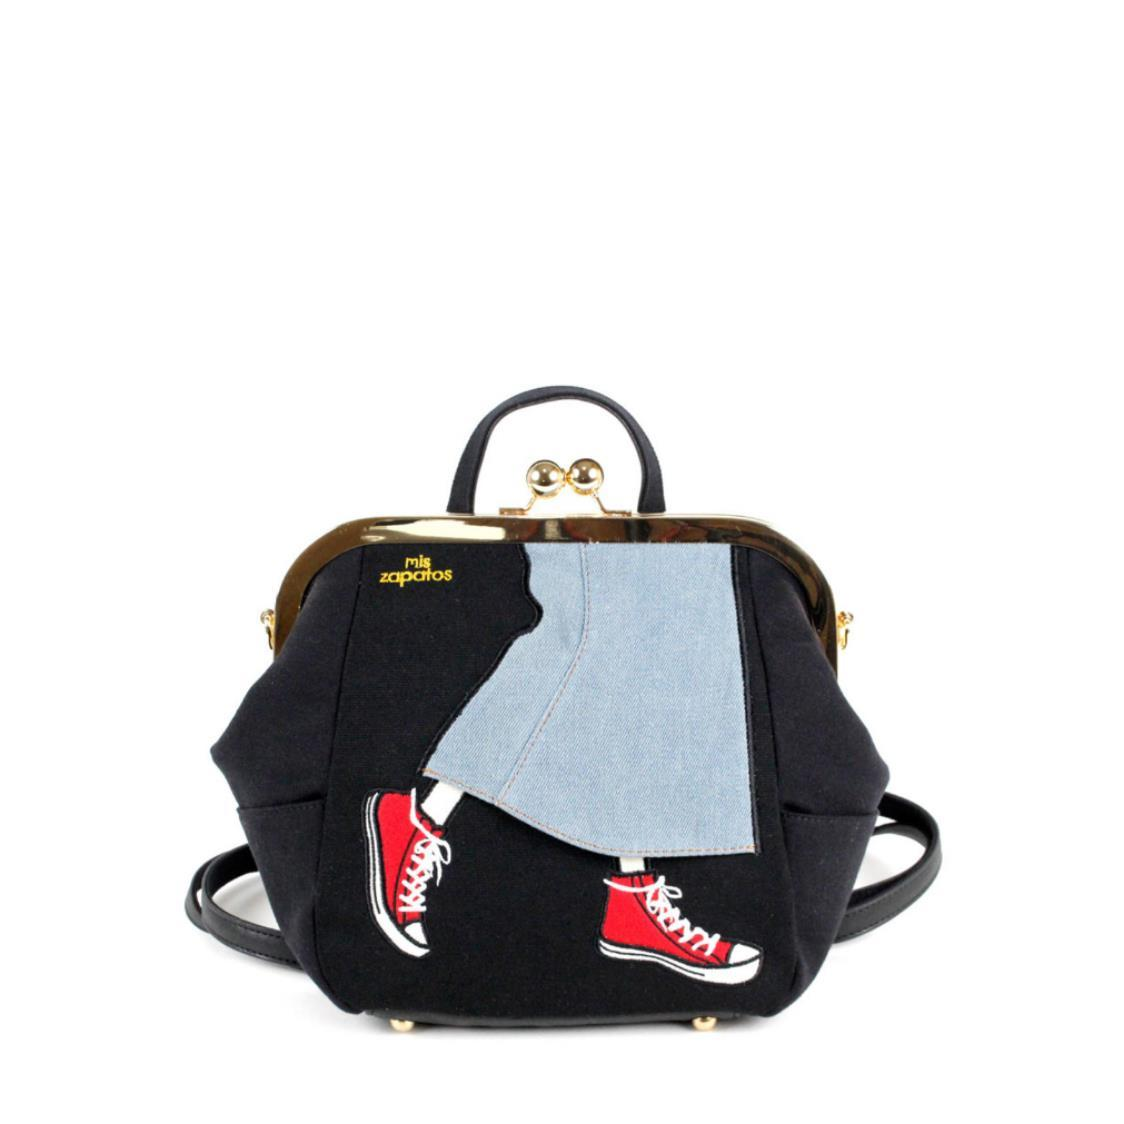 3-Way Use Jeans Skirt with Sneakers Handbag Using Ball Clasp Closure Black